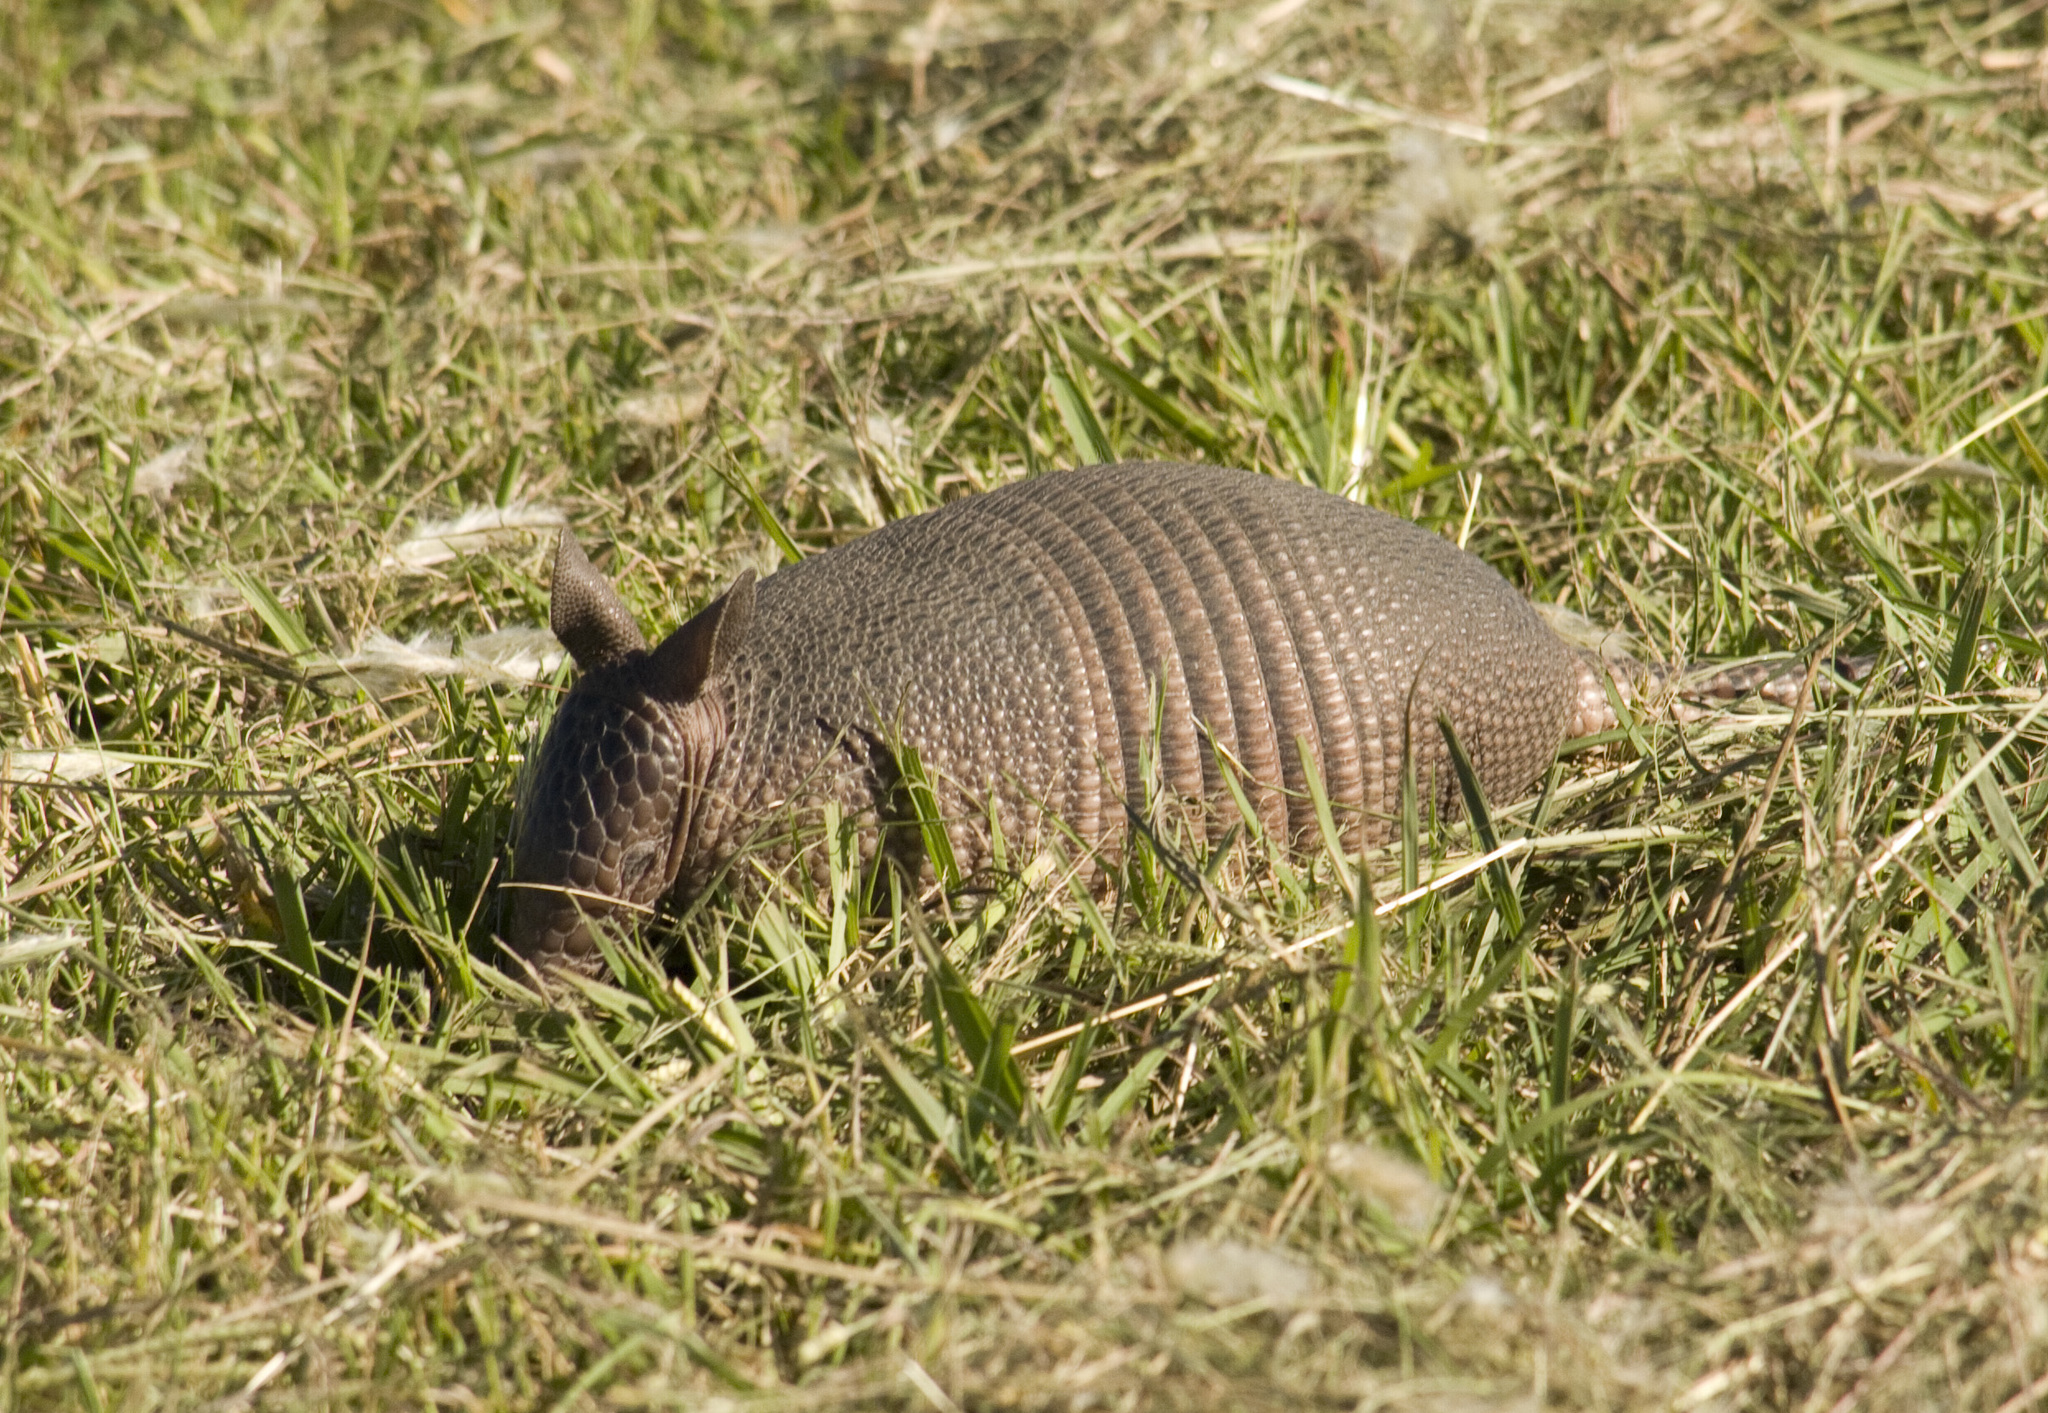 Image of Southern Long-Nosed Armadillo